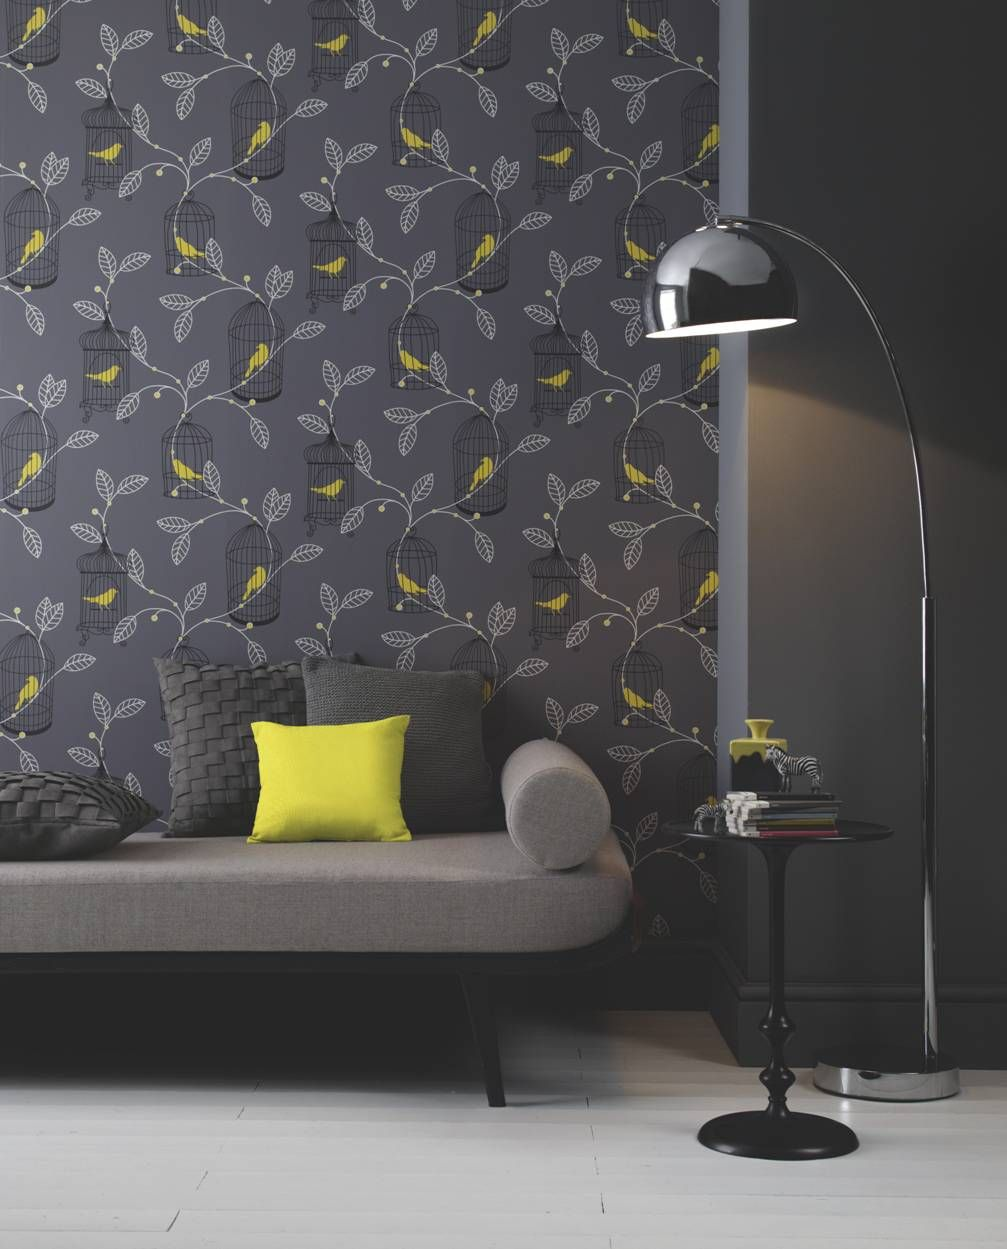 Team This Stiking Aviary Wallpaper With Yellow Accessories